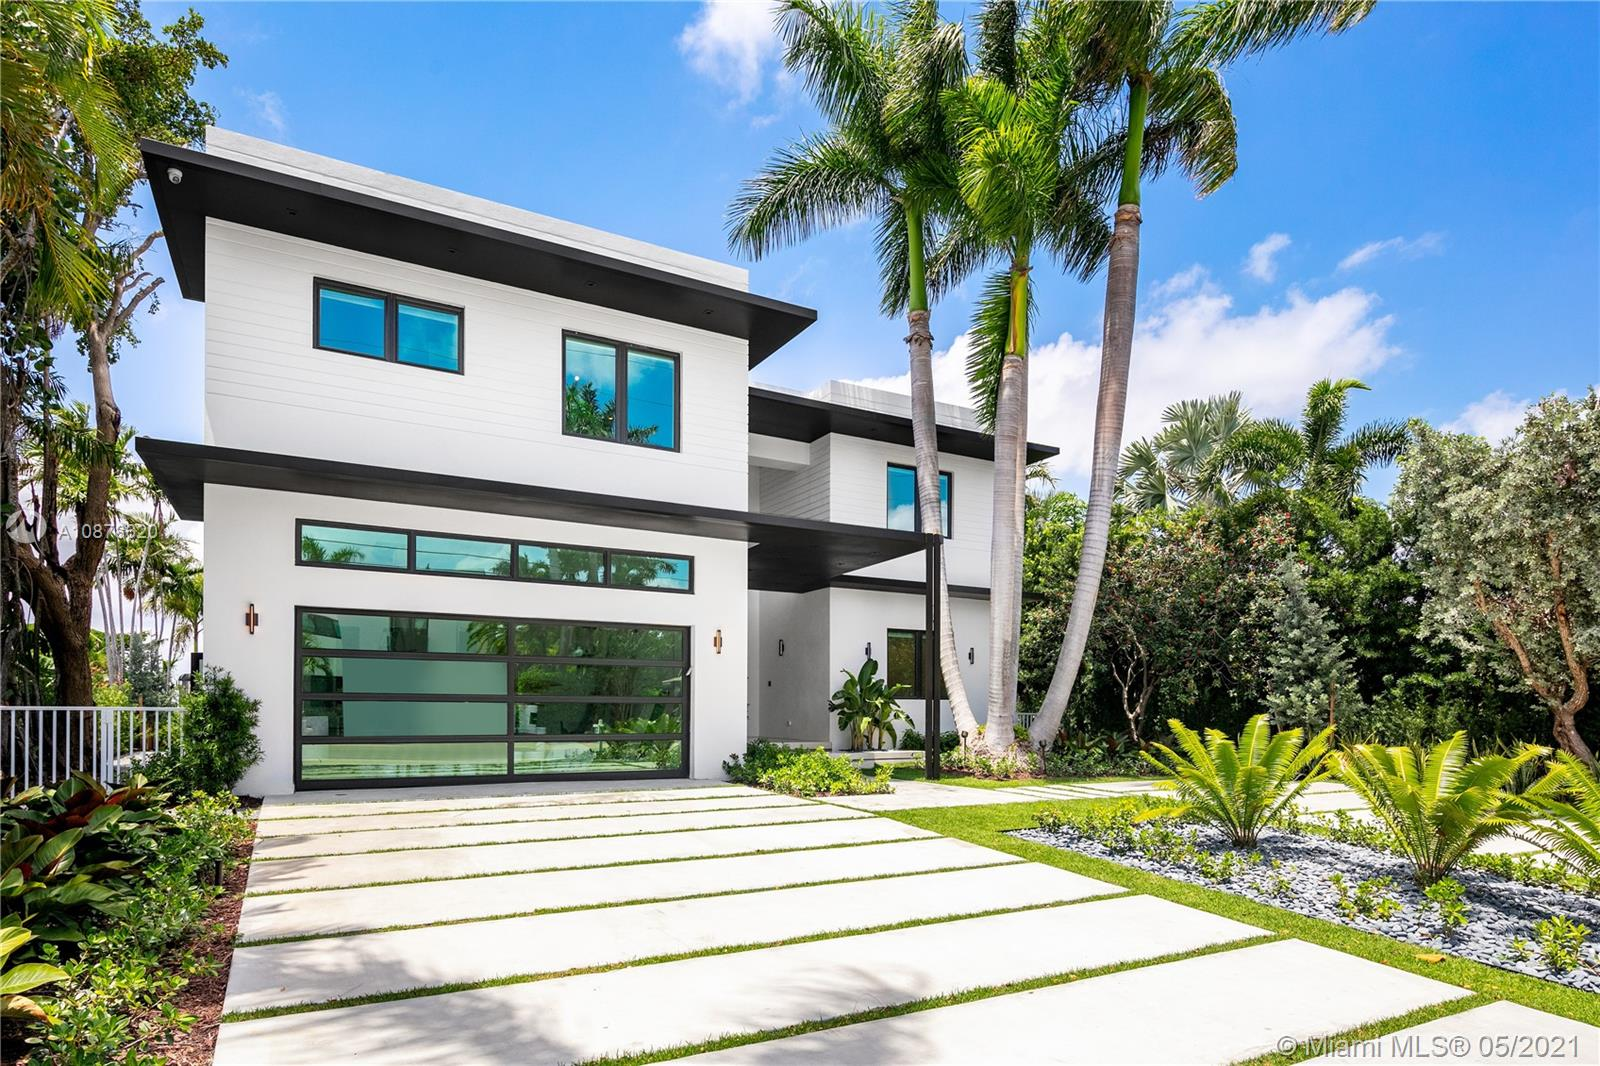 Situated on the Open Bay w/ endless water & west sunset views, this Completely Rebuilt Contemporary home features 7100 SF of Living Space complimented by top of the line finishes throughout. Enjoy a perfect layout for family living & entertainment which features 8 BD, 8.5 BA + home office. The 1st floor sets the tone w/ 60x60 porcelain tiles, one of a kind staircase w/ live green wall & a Snaidero Kitchen comprised of wood taken from the pilasters of Venice. Upstairs you'll be blown away by the master retreat which boasts breathtaking western views of the bay & sunsets, private lounge / sitting room, bespoke master bathroom w/ steam shower & enormous his & hers closets. The backyard provides a tropical setting w/ pool & spa, new seawall cap & brand new 60' dock. Completion in Fall of 2020